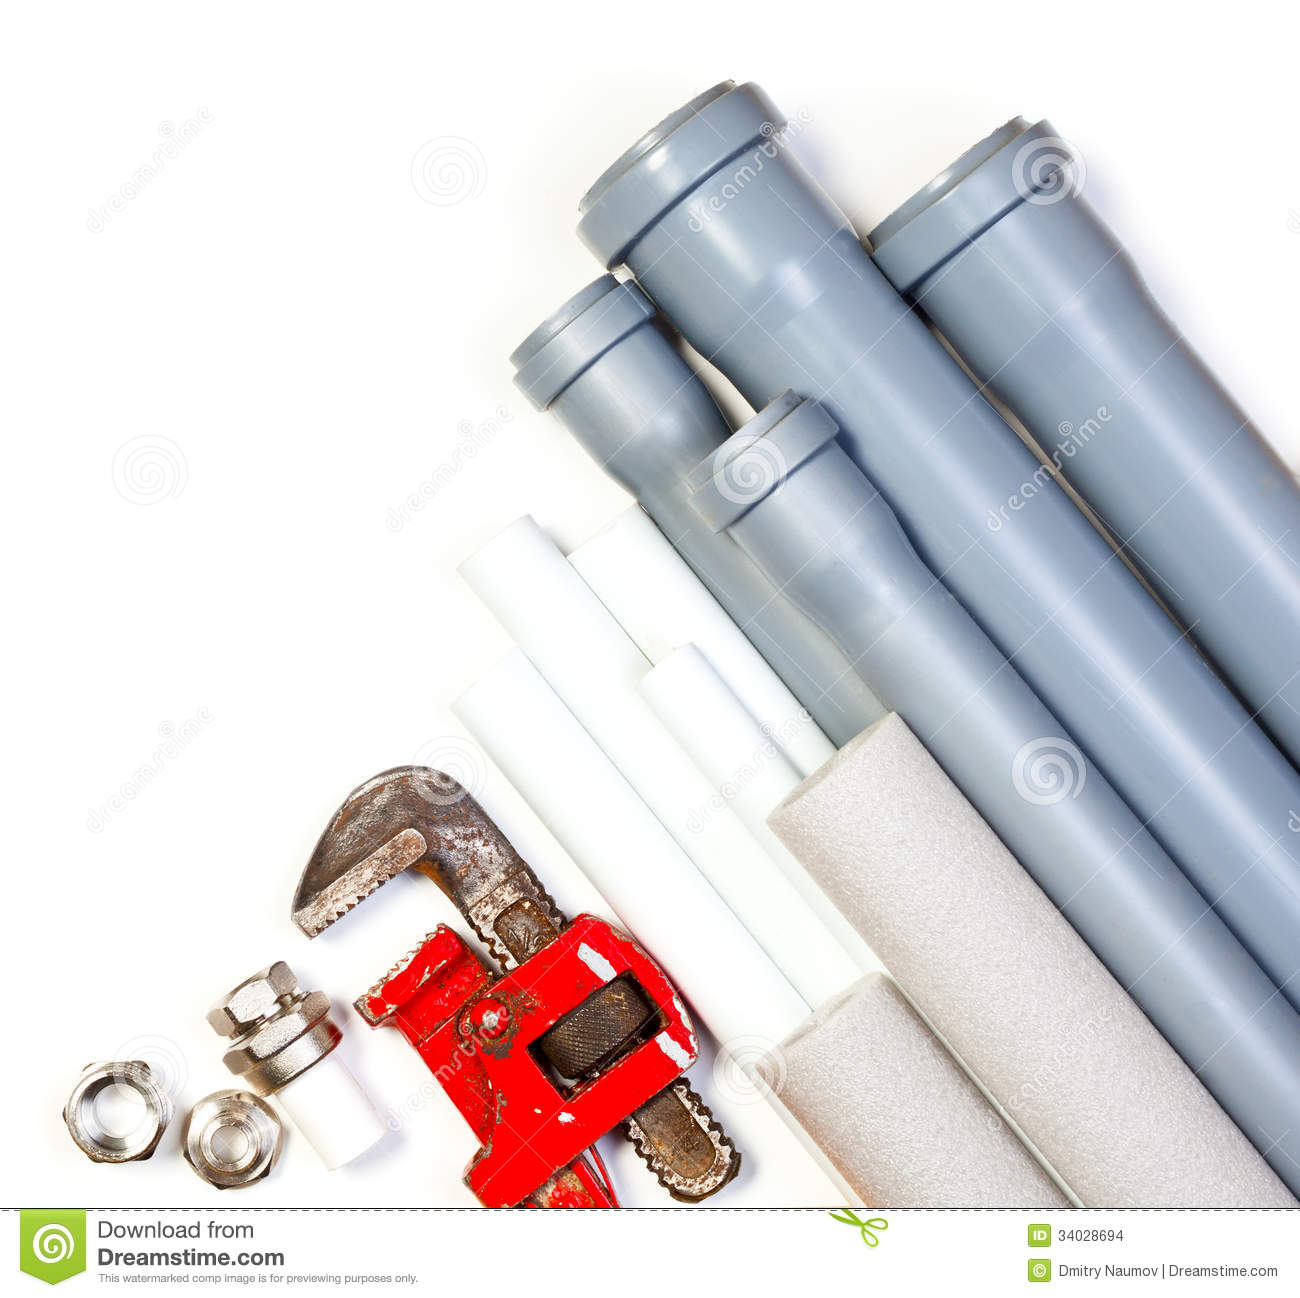 Plumbing Specialty Study Guide - RVST